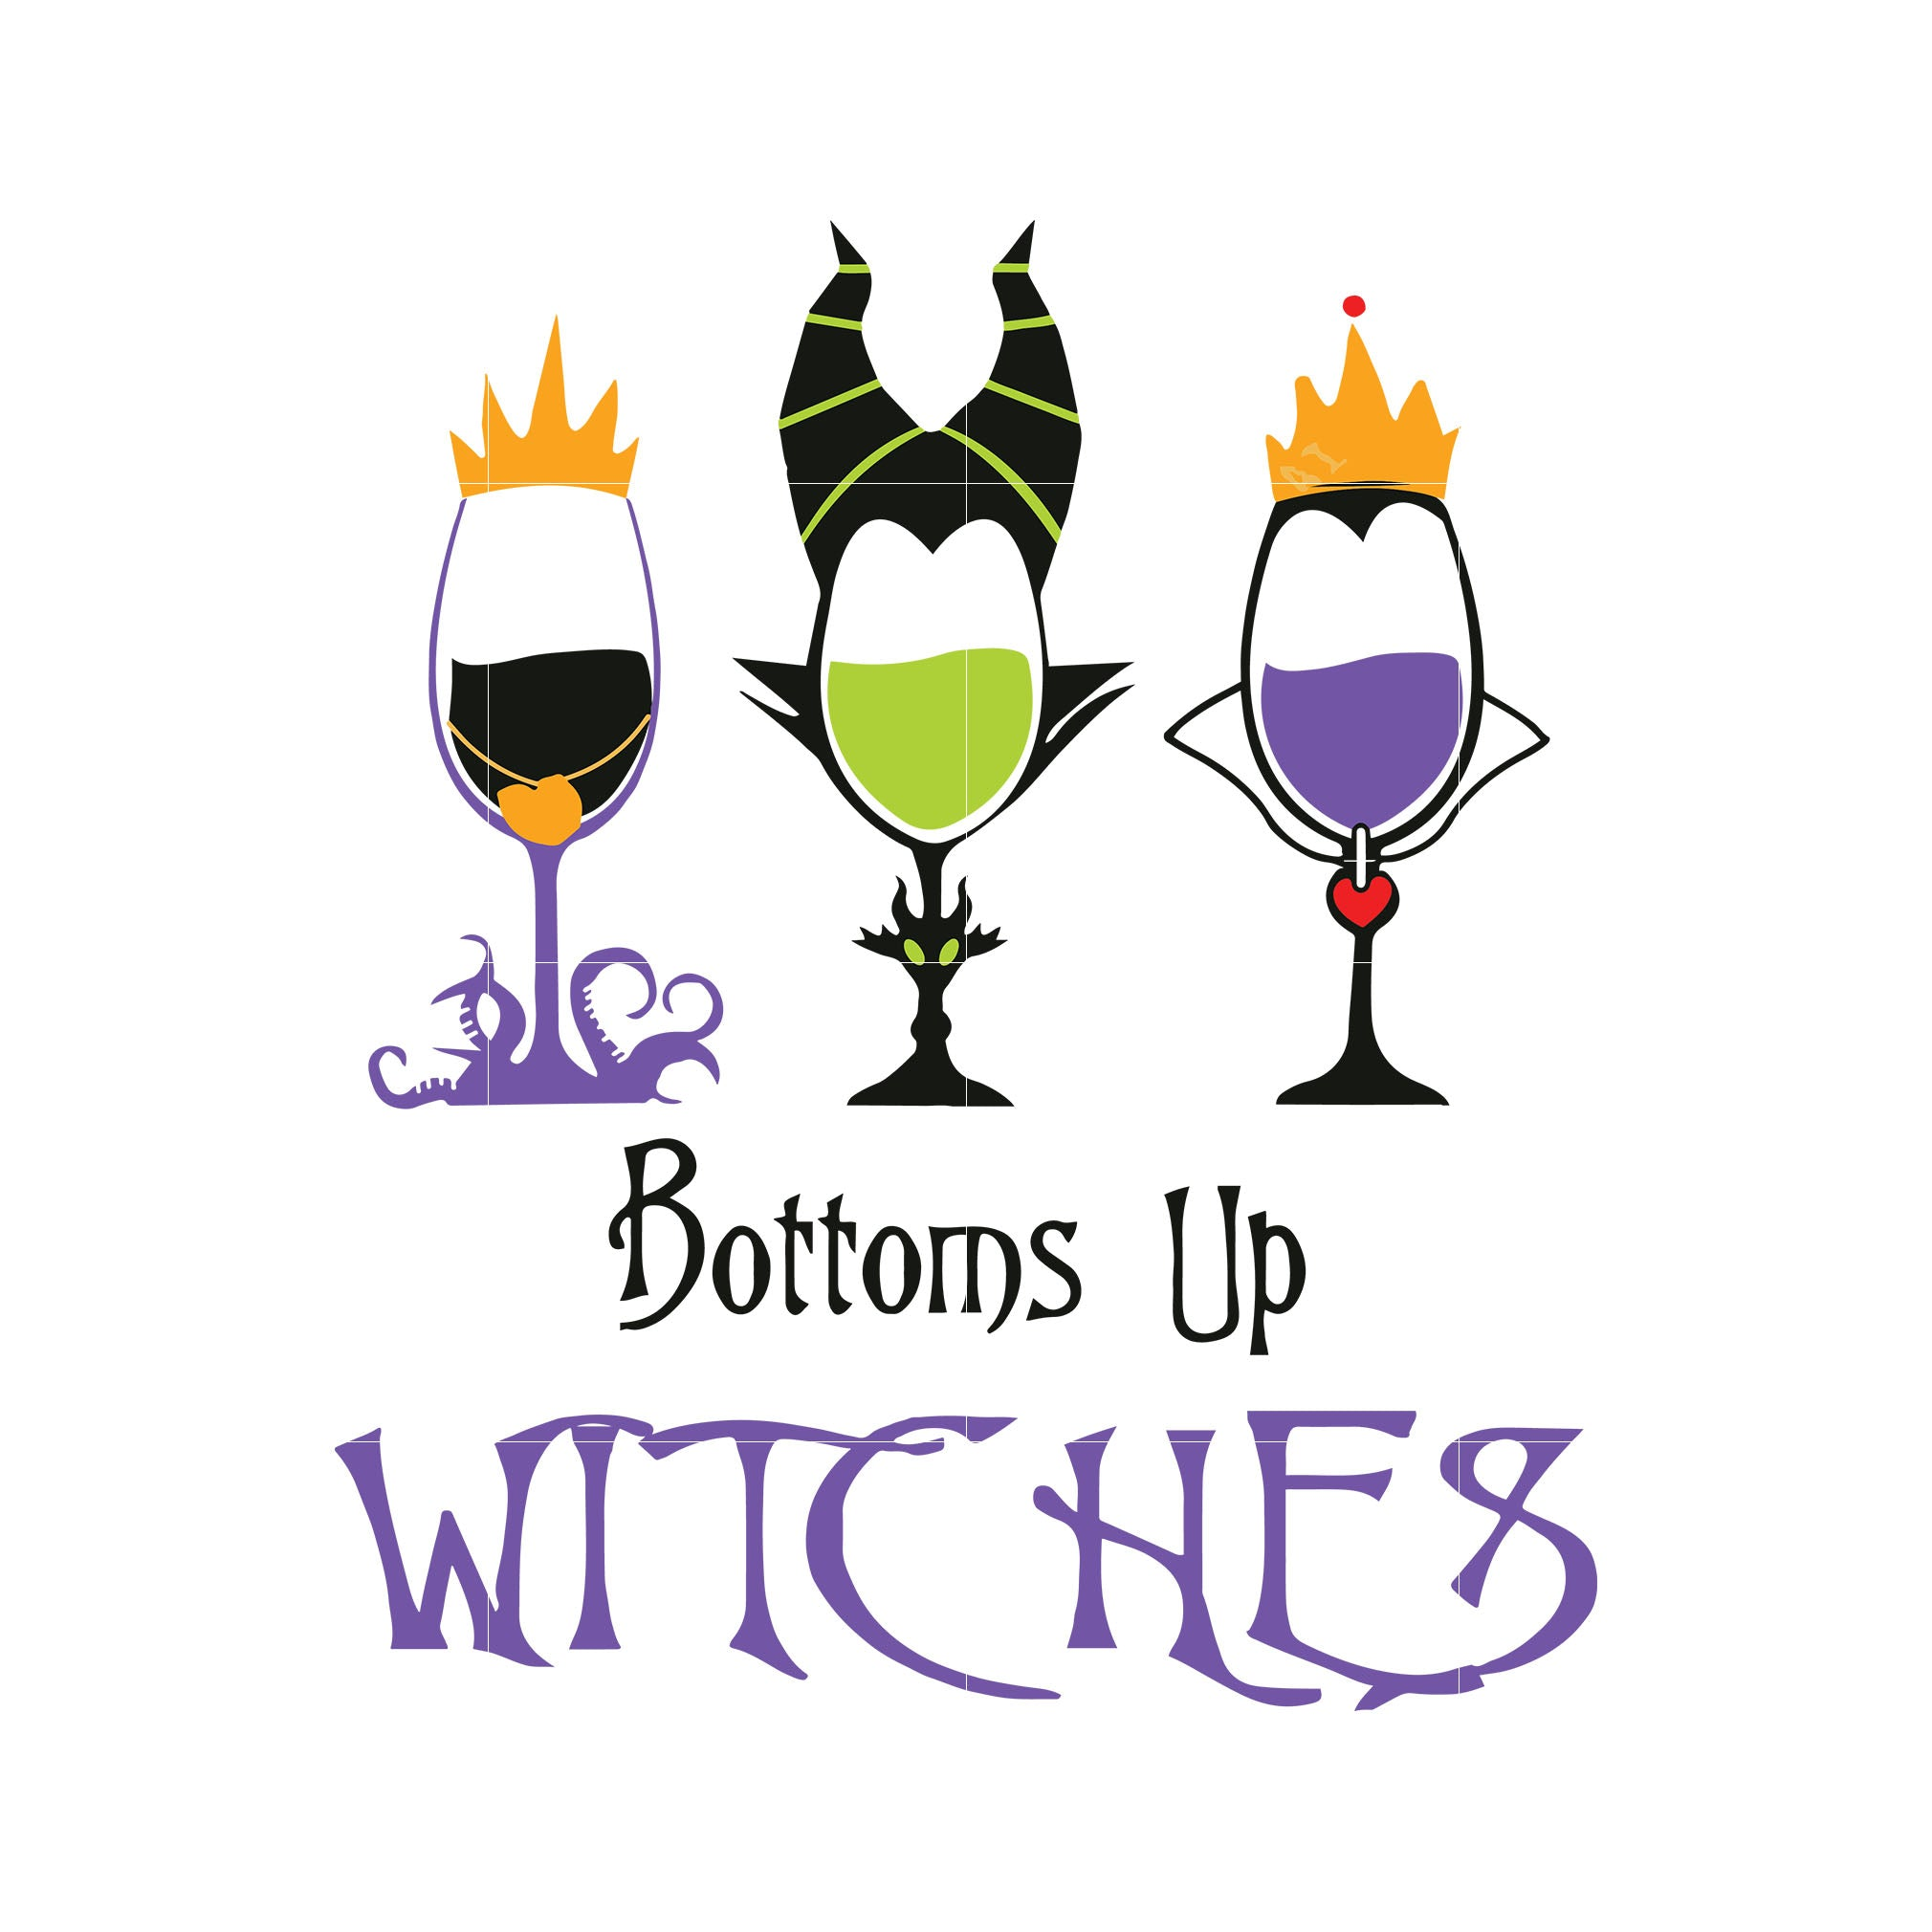 Bottoms up witches svg,dxf,eps,png digital file